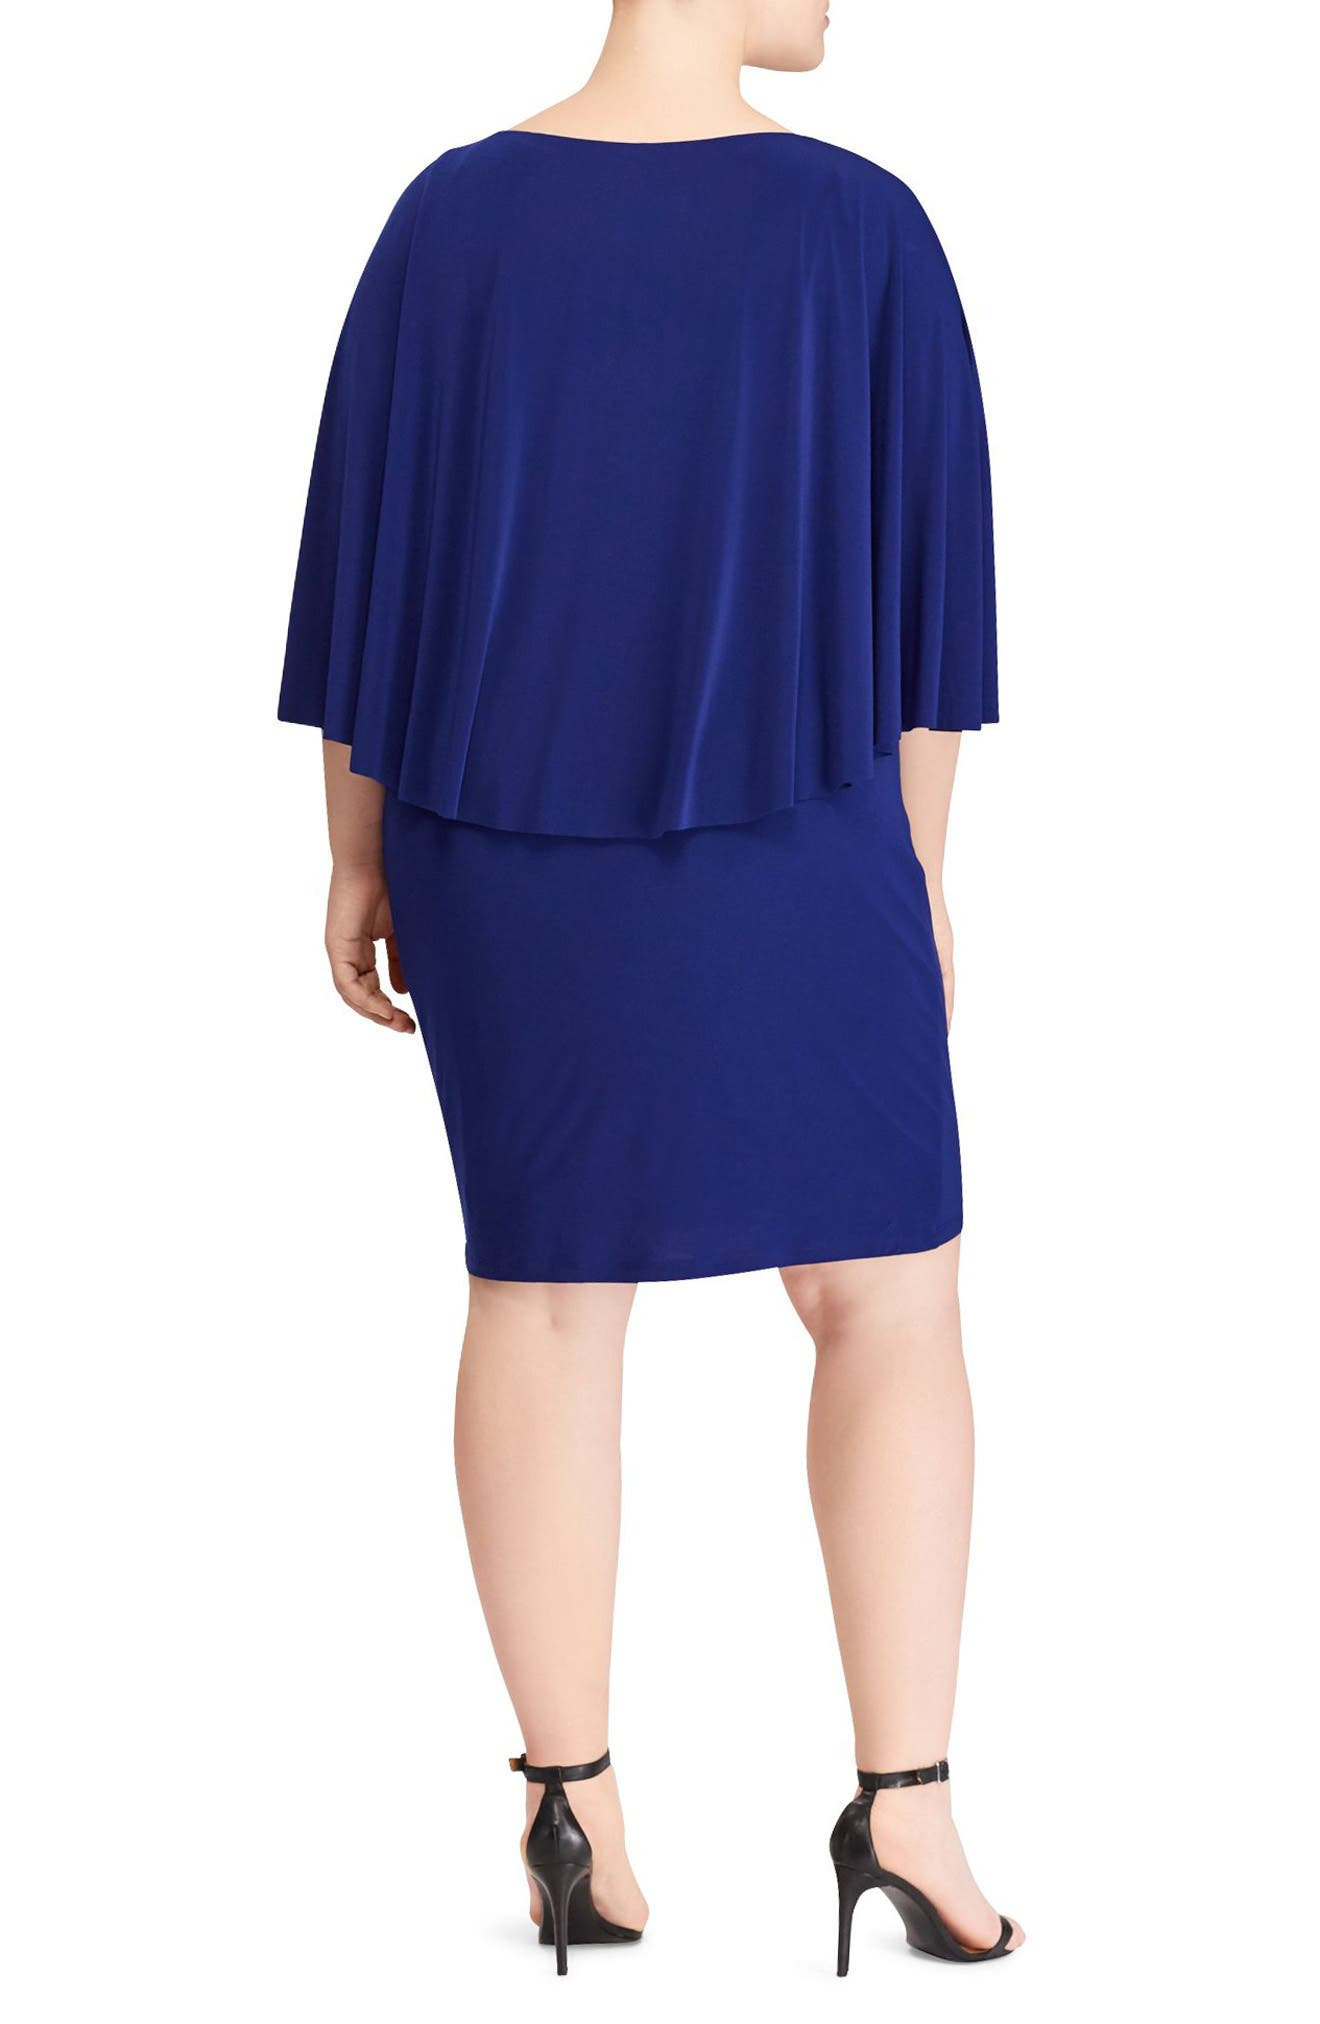 Abriella Cape Sheath Dress,                             Alternate thumbnail 2, color,                             400